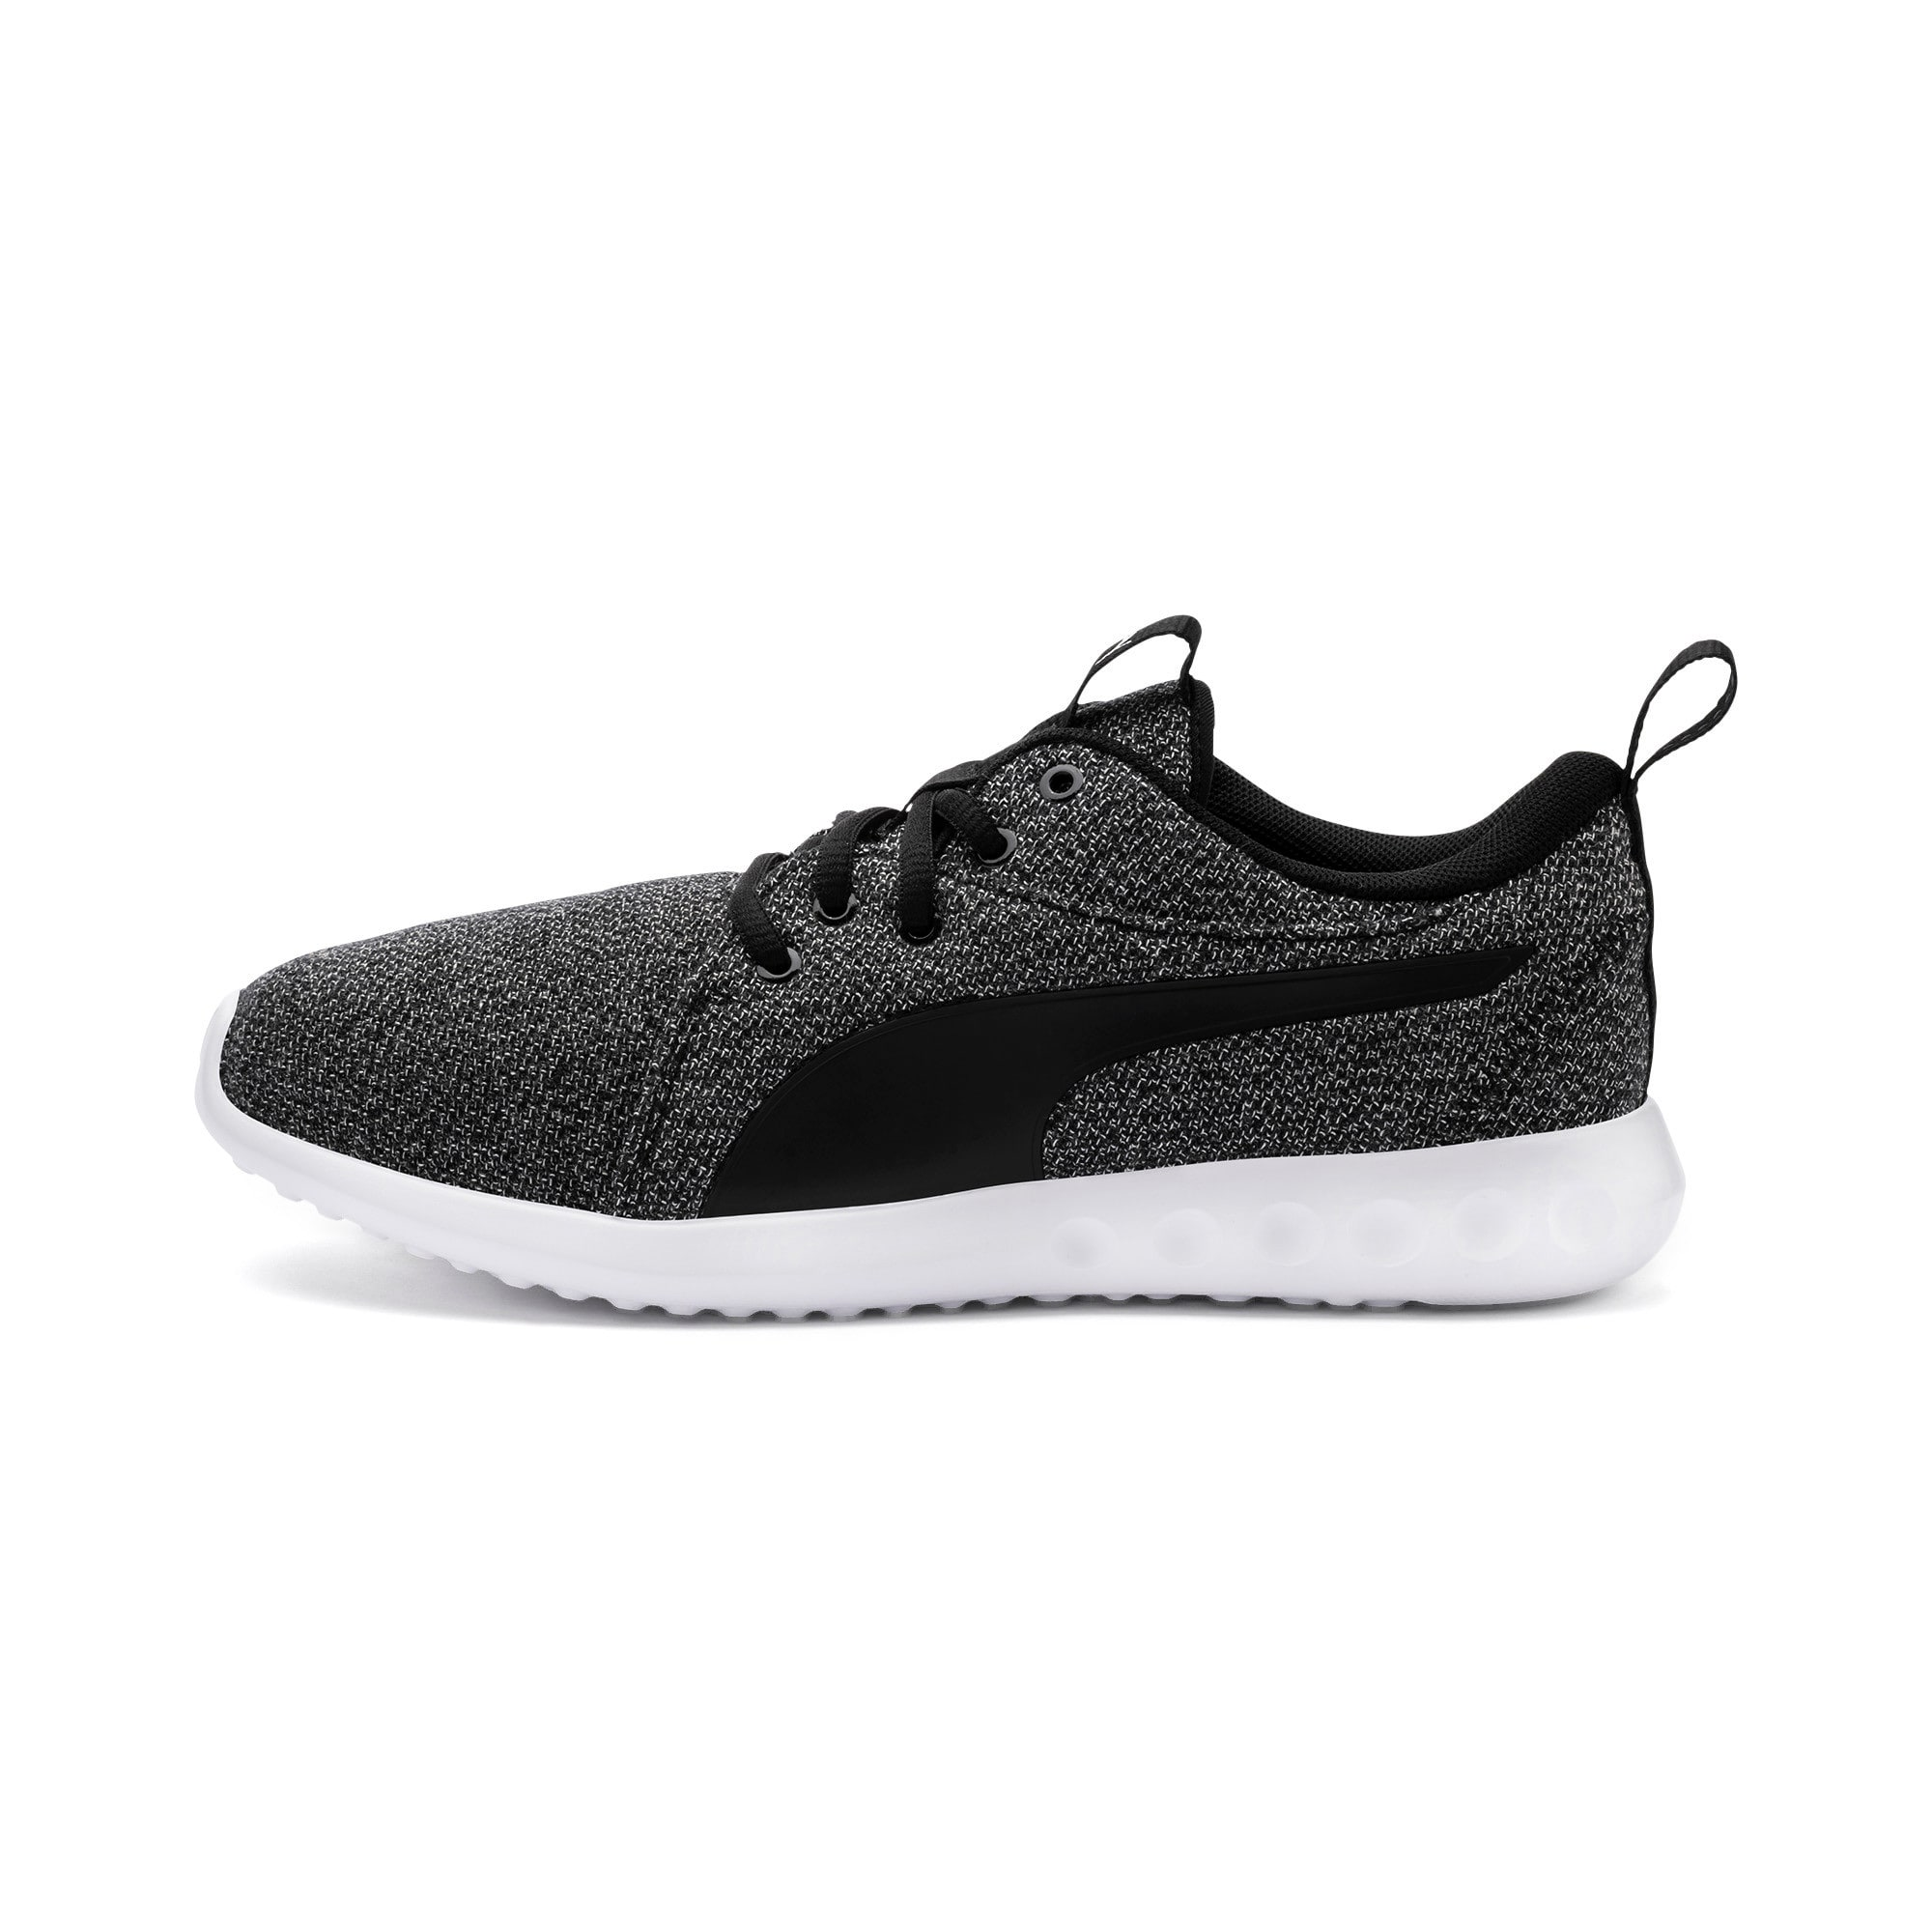 Thumbnail 1 of Carson 2 Knit Damen Sneaker, Puma Black-Puma White, medium